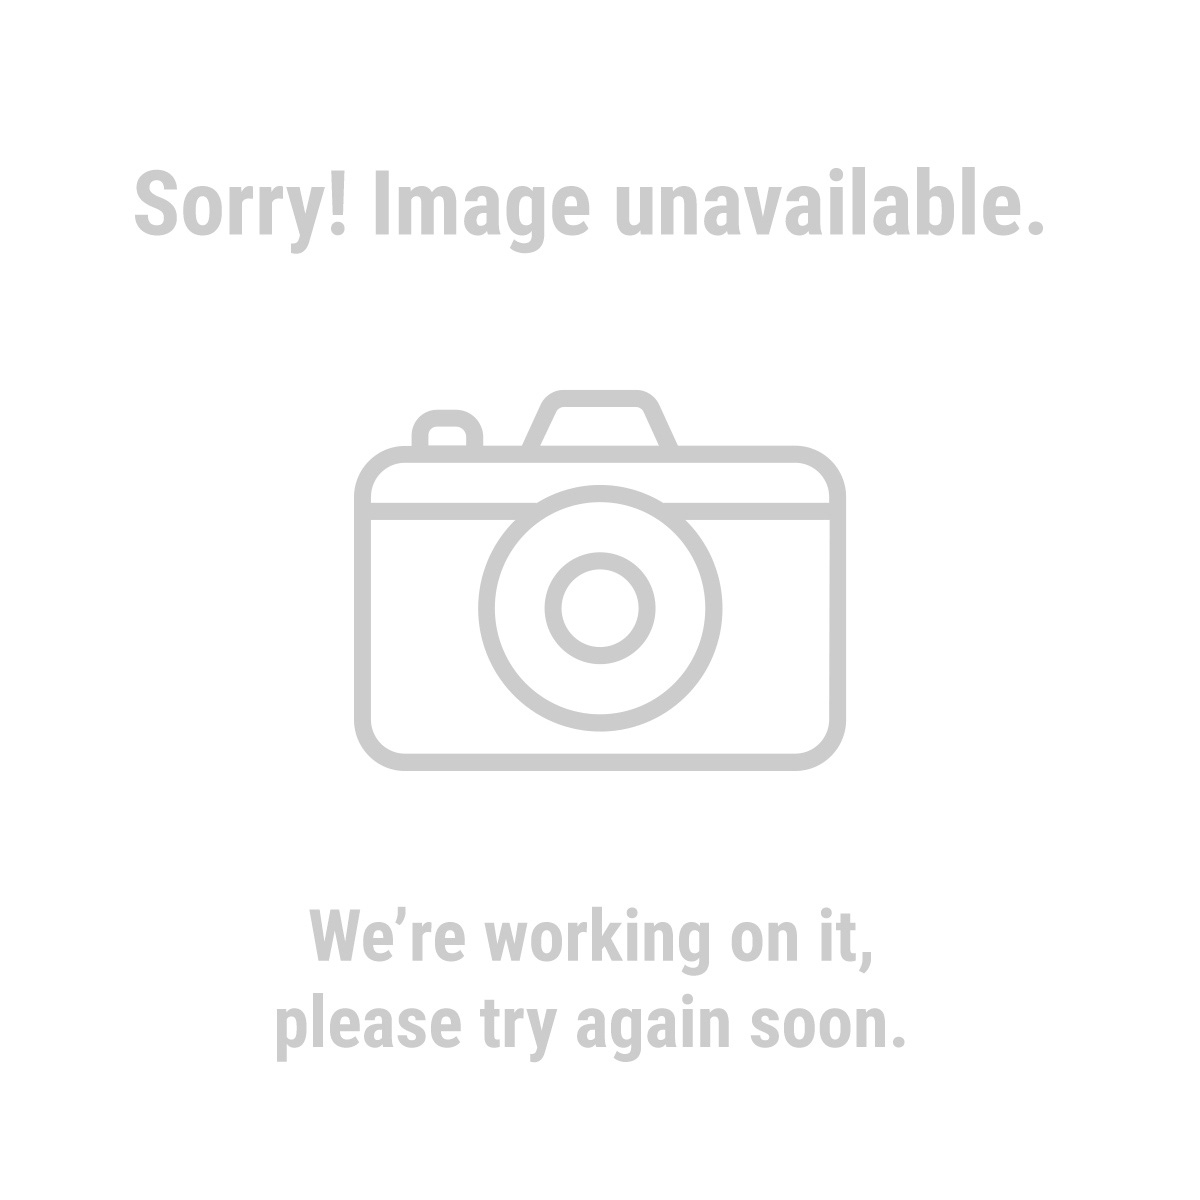 Pittsburgh® Automotive 97959 11 Piece Noid Light and IAC Tester Set